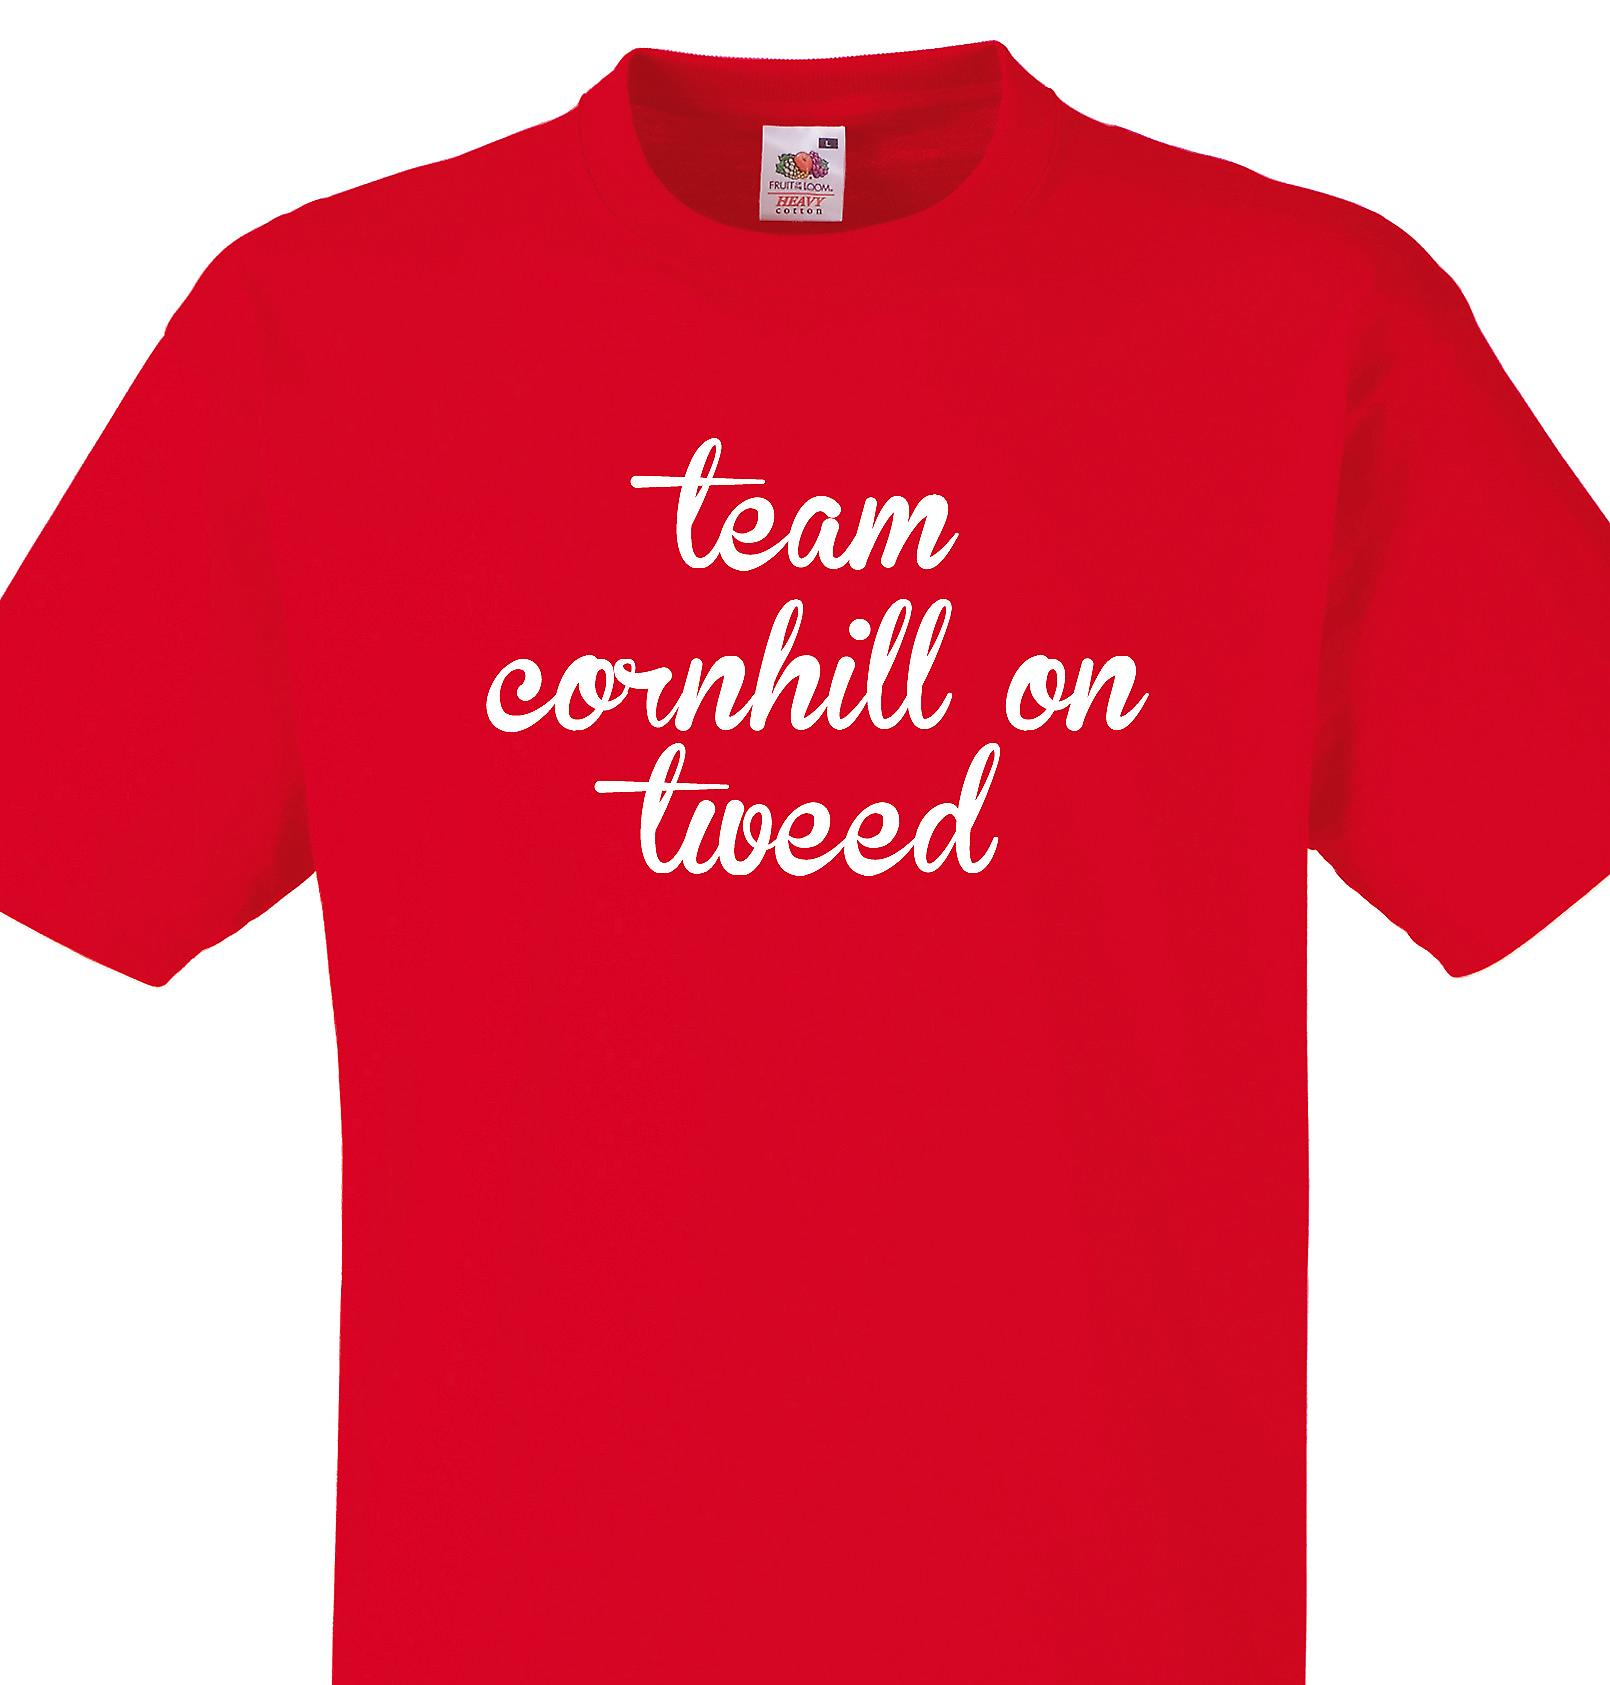 Team Cornhill on tweed Red T shirt